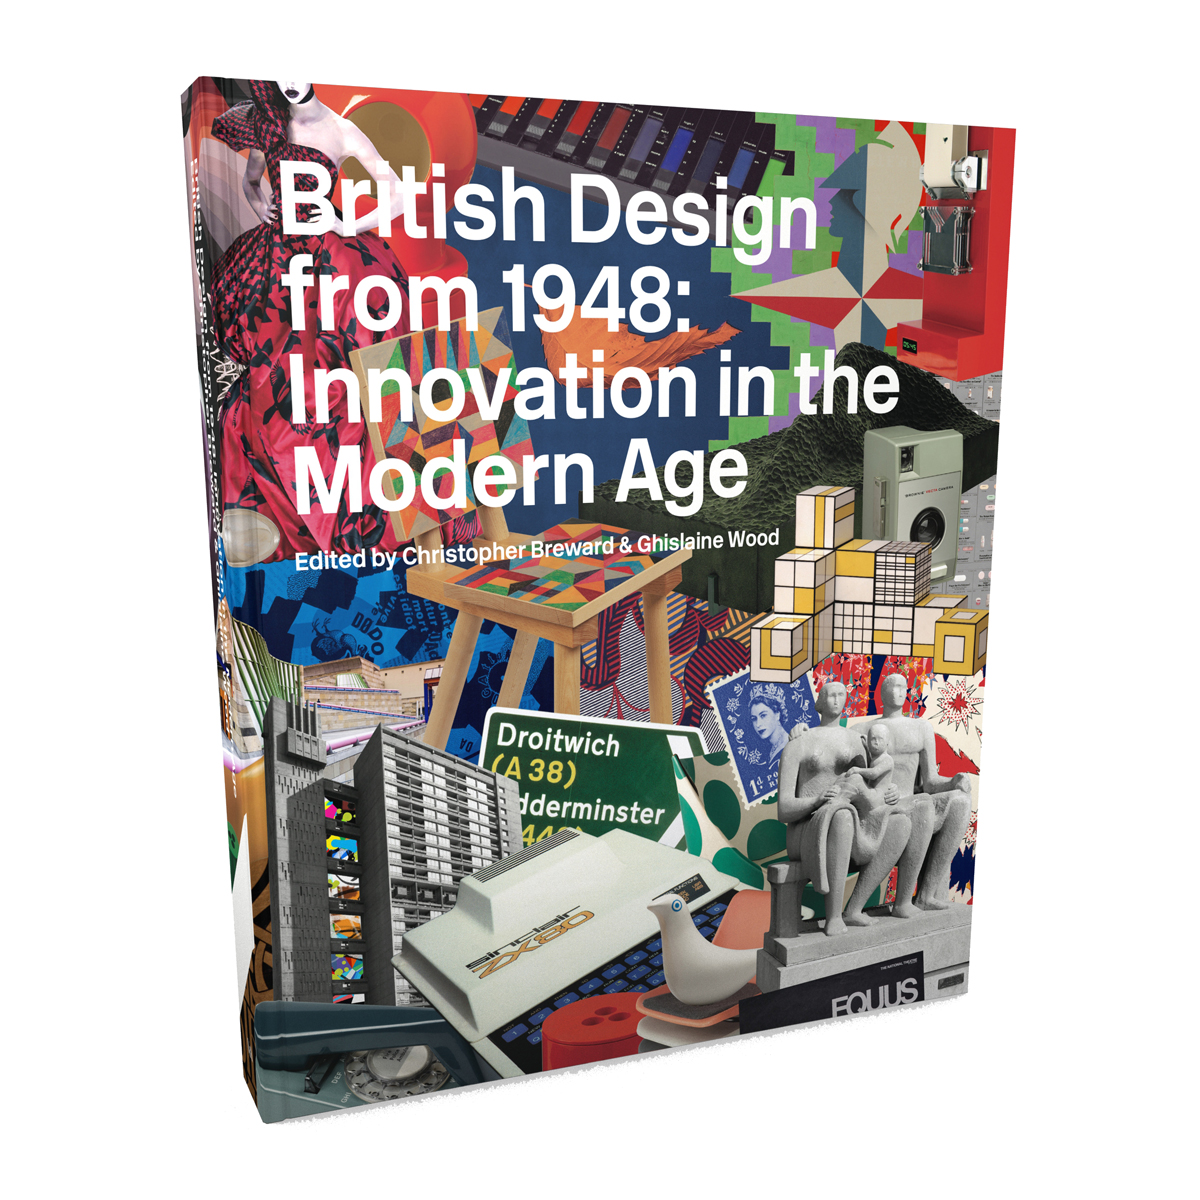 British Design from 1948: Innovation in the Modern Age